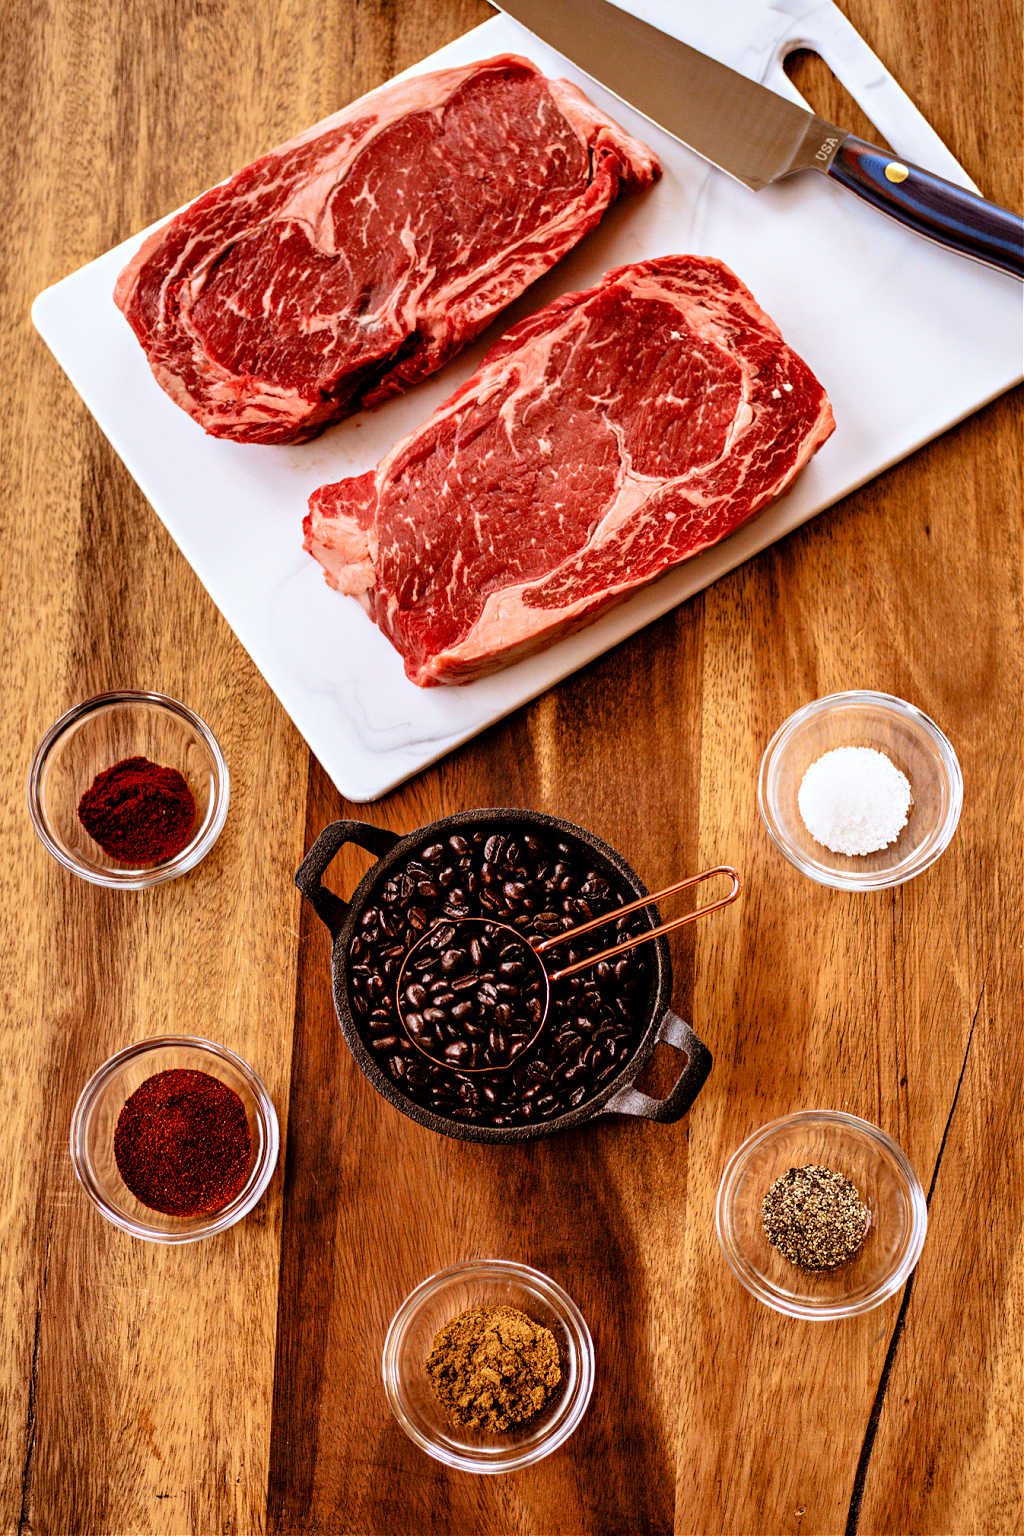 spices and dark roast coffee beans on a wooden table with 2 ribeye steaks, prepping for dry rub